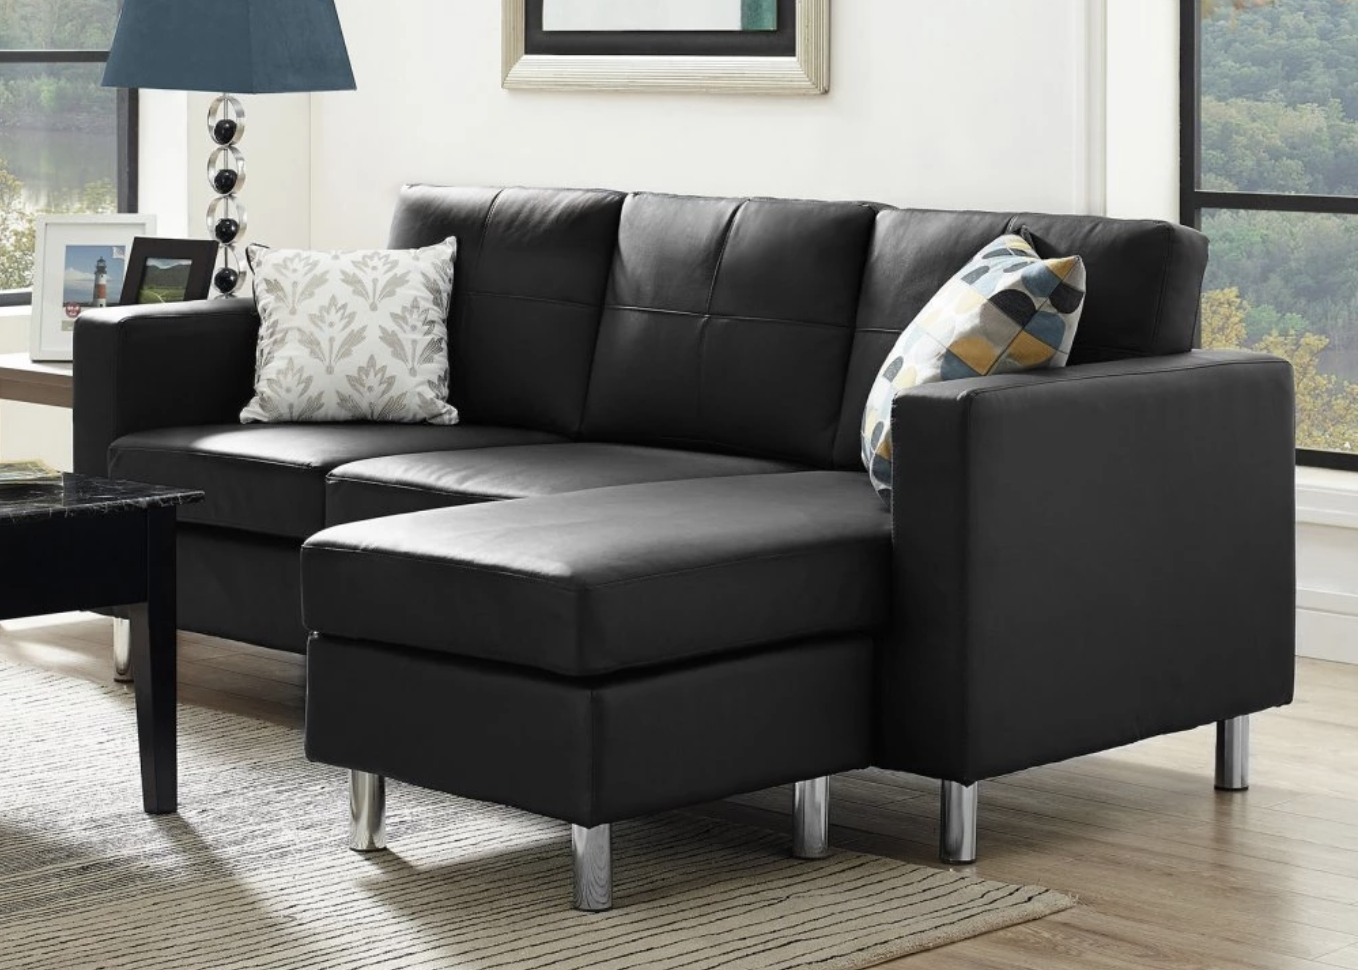 Recent 75 Modern Sectional Sofas For Small Spaces (2018) Intended For 110X90 Sectional Sofas (View 13 of 15)